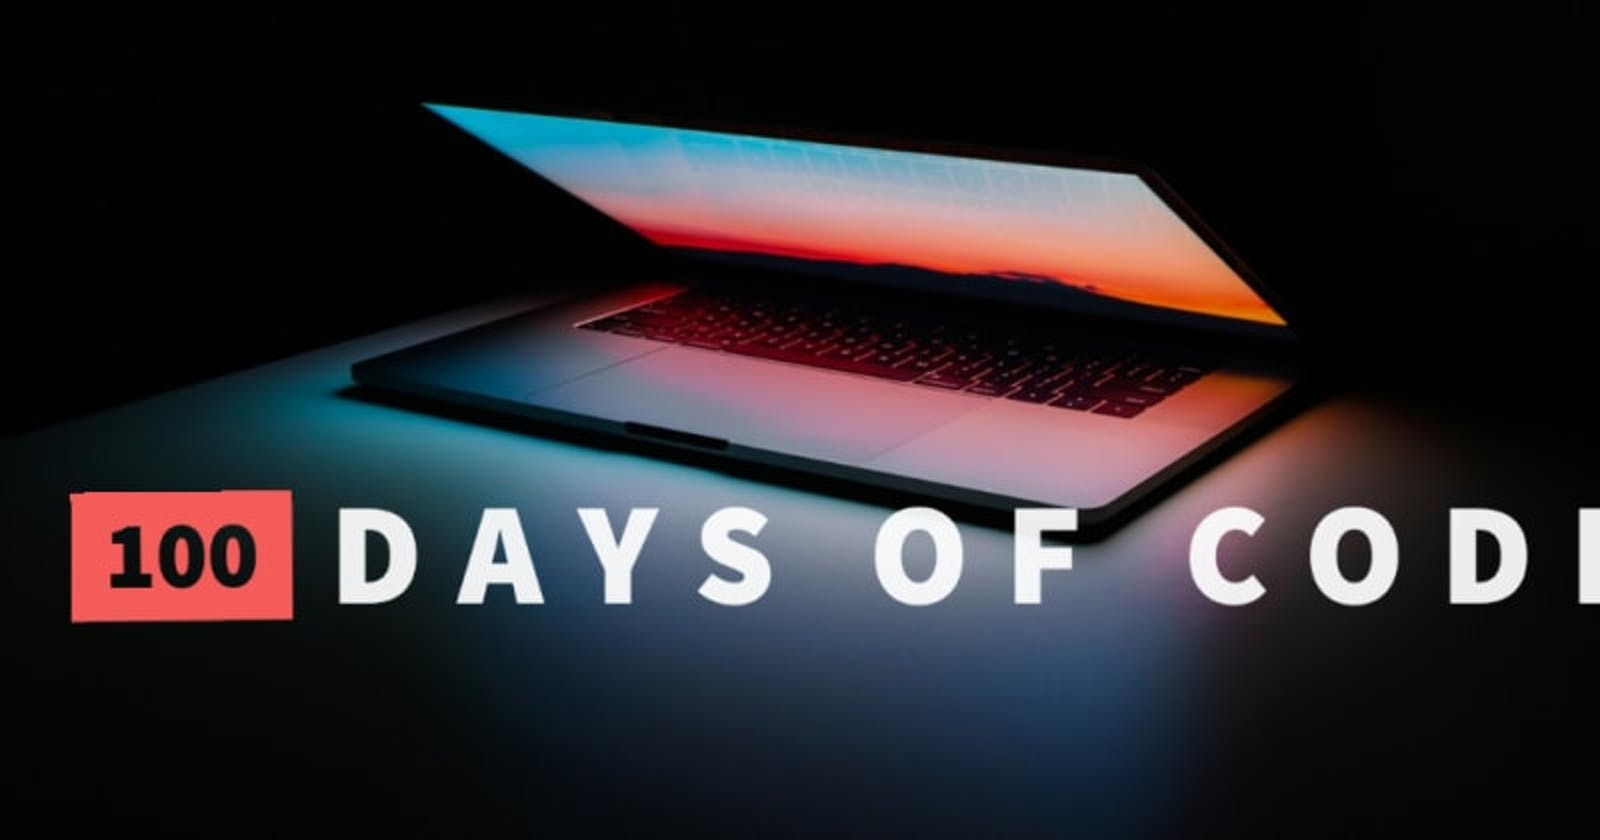 Why I stopped the 100 days of code challenge